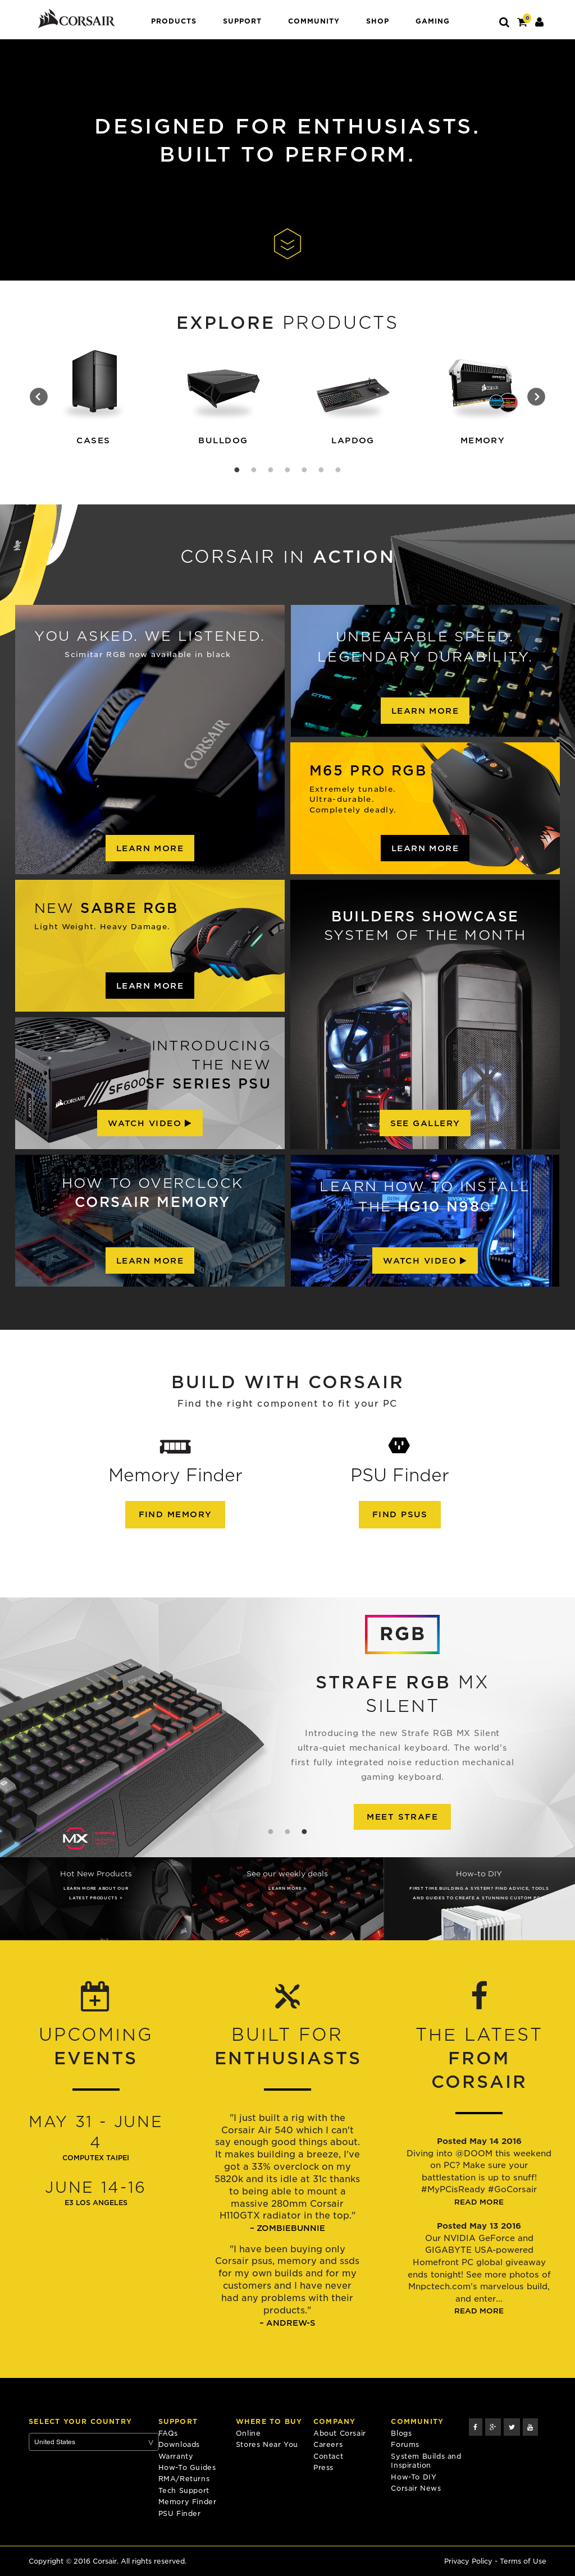 Corsair Competitors, Revenue and Employees - Owler Company